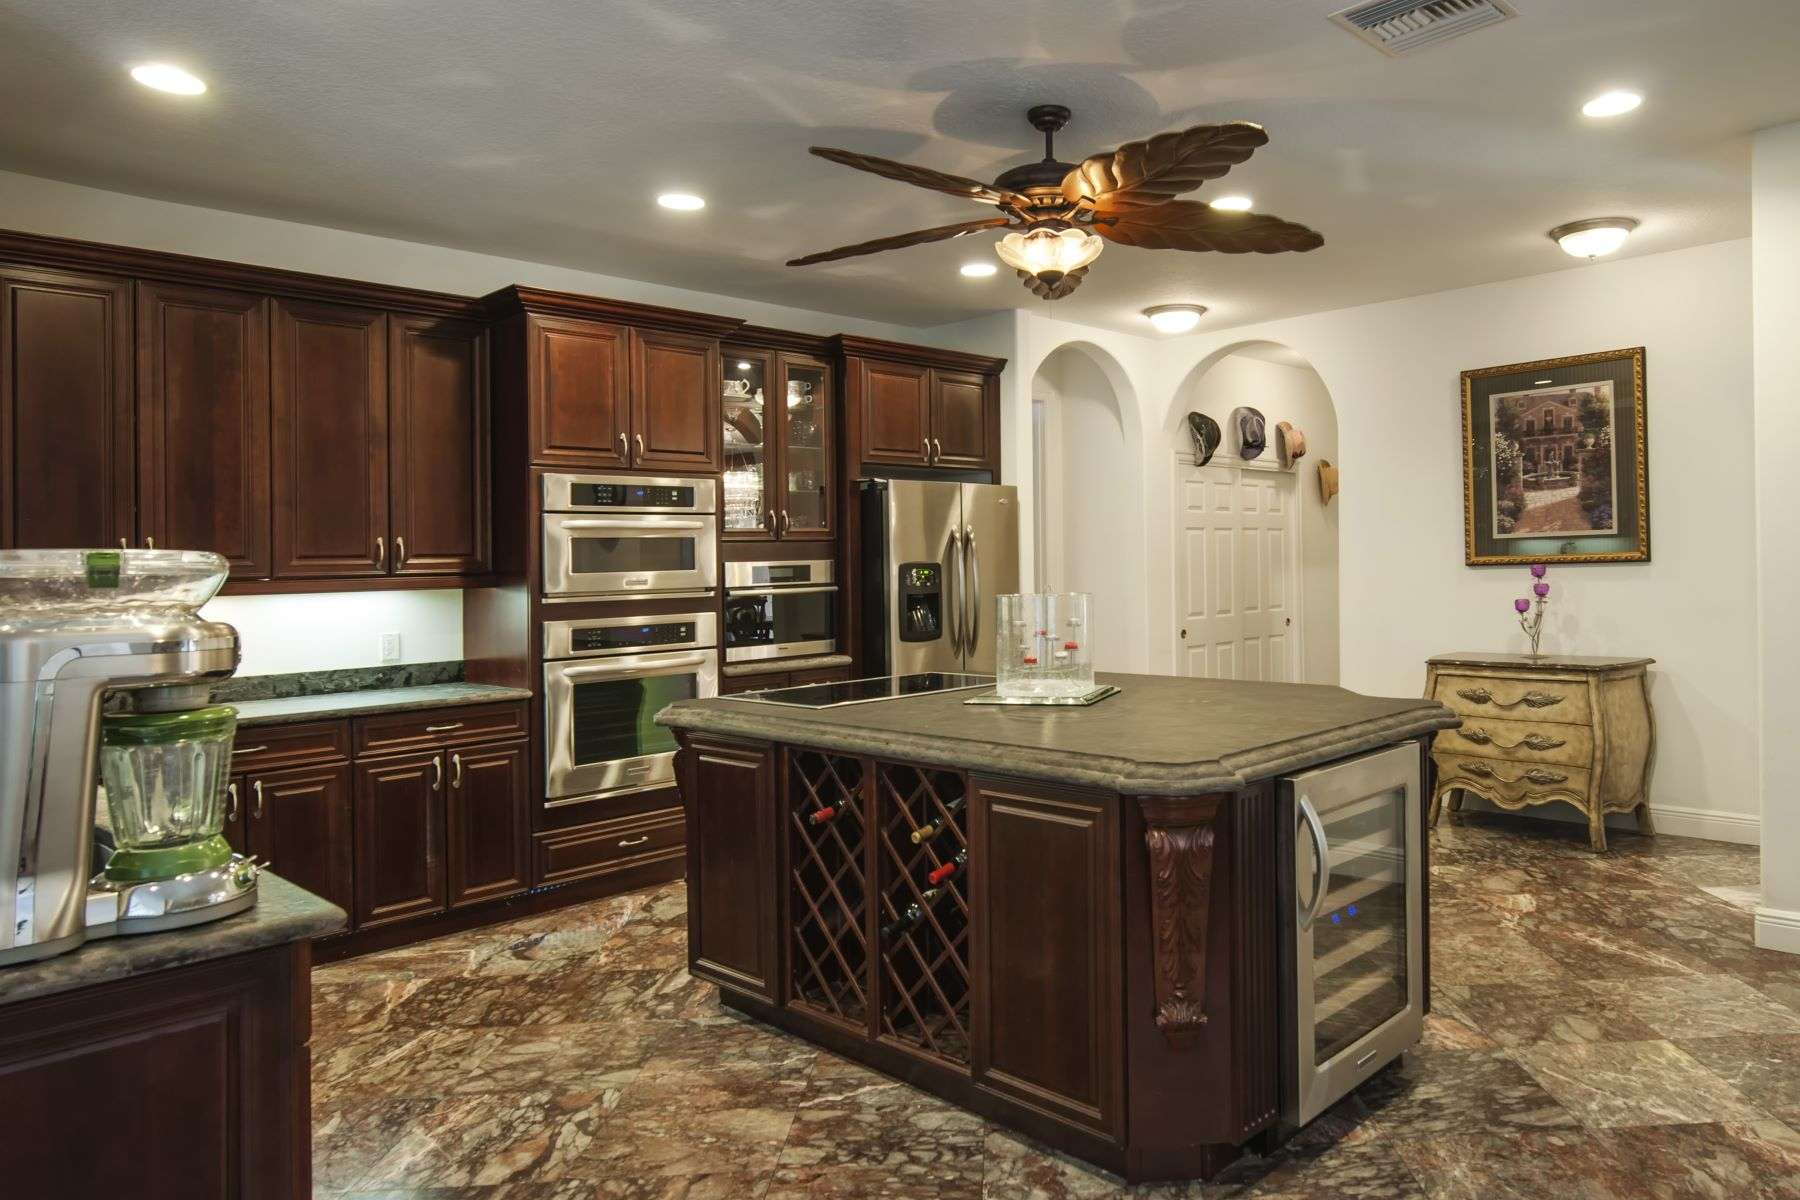 Additional photo for property listing at 4676 Pebble Bay S Vero Beach, Florida 32963 United States